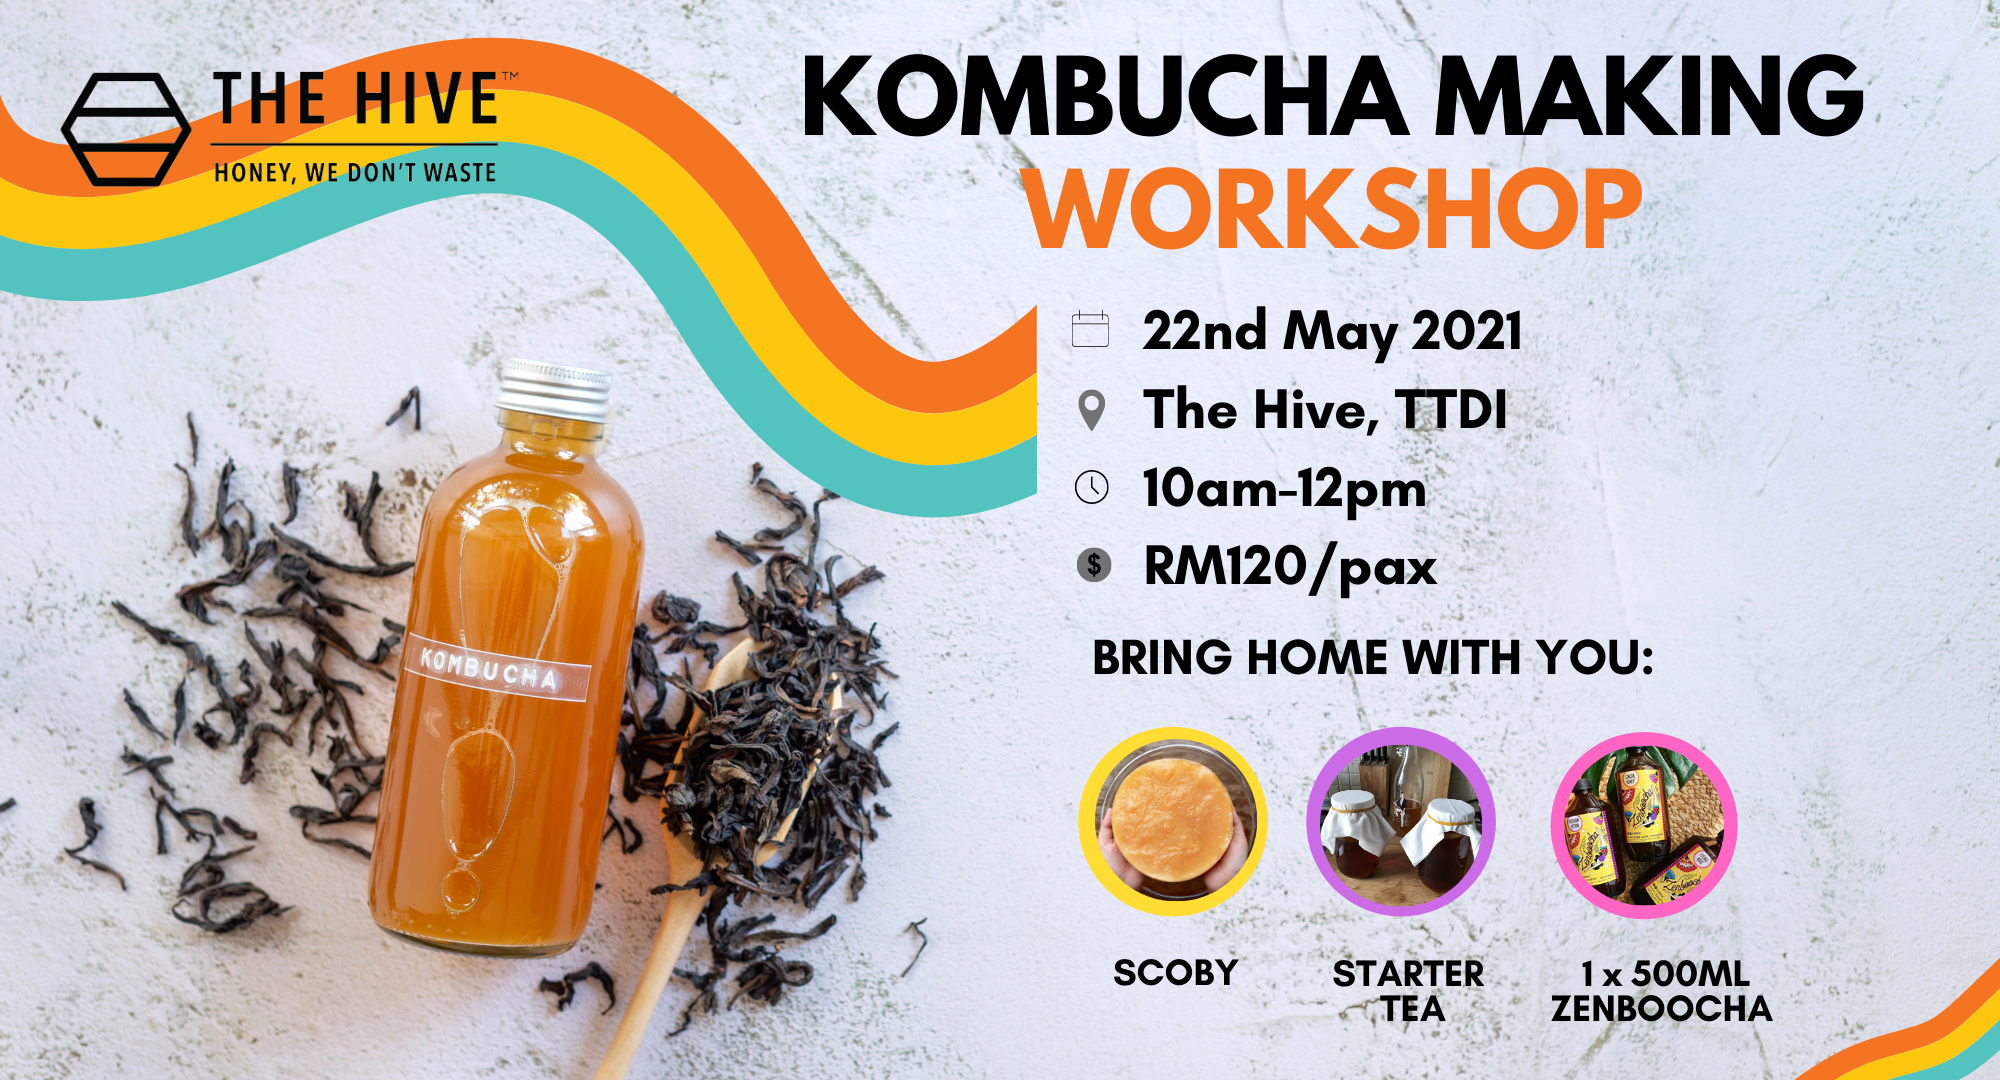 Kombucha Making Workshop | 22nd May 2021